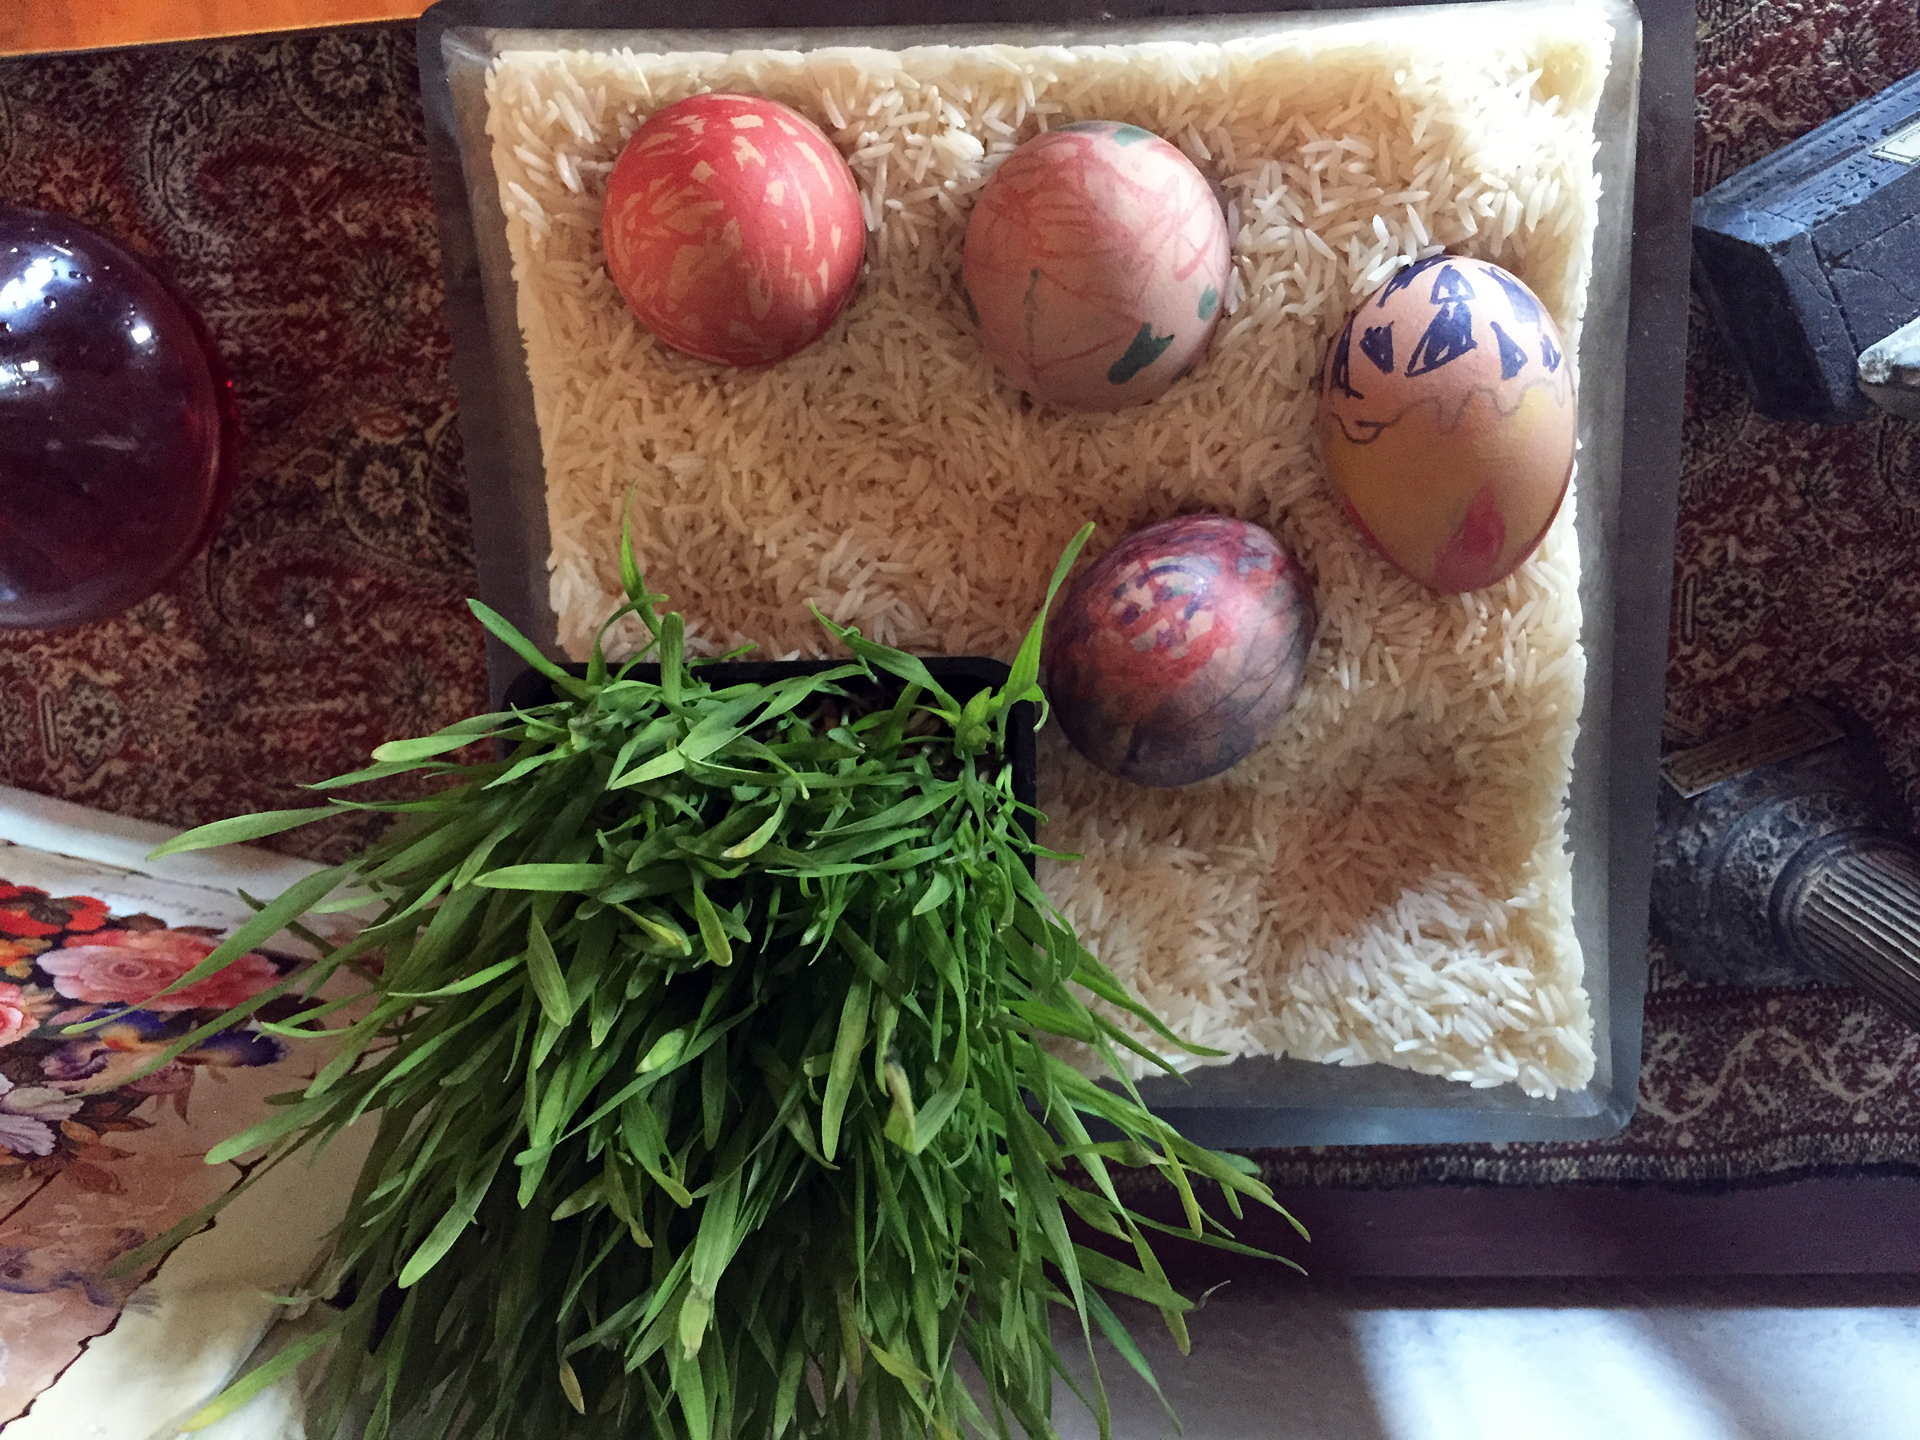 Eggs, which weren't a part of the original haftsin table, symbolize symbolize fertility.